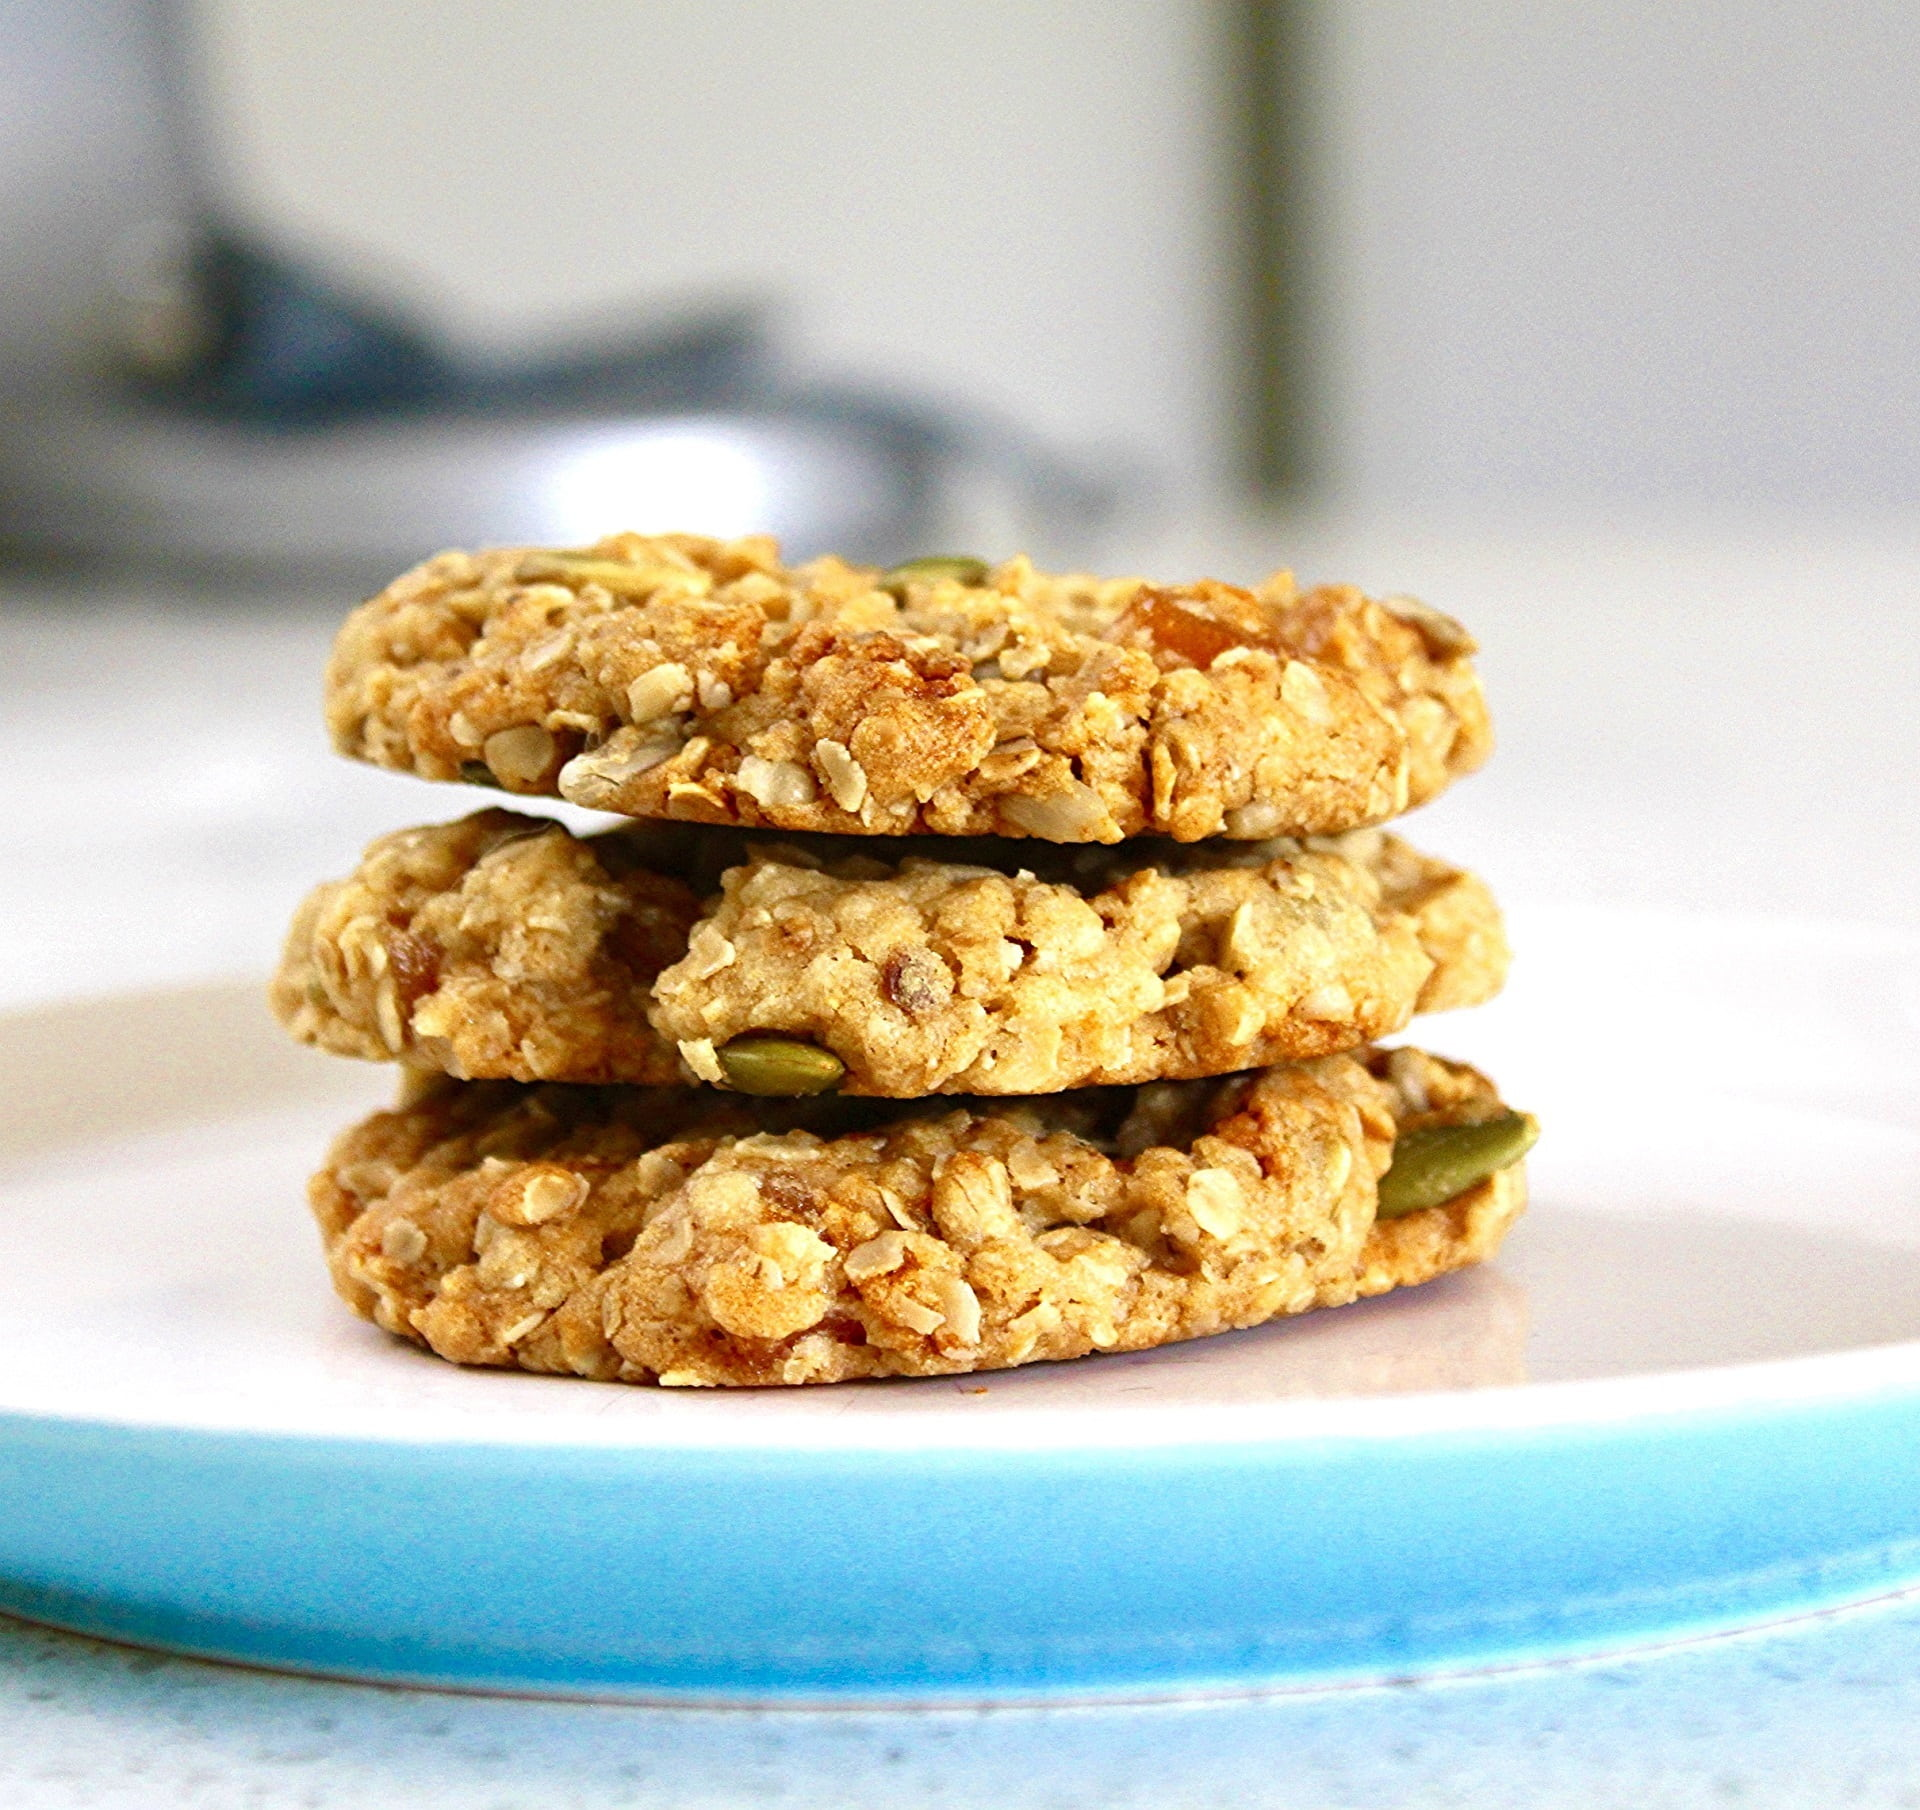 Three healthy-looking  cookies stacked on top of each other | Photo: Pikrepo